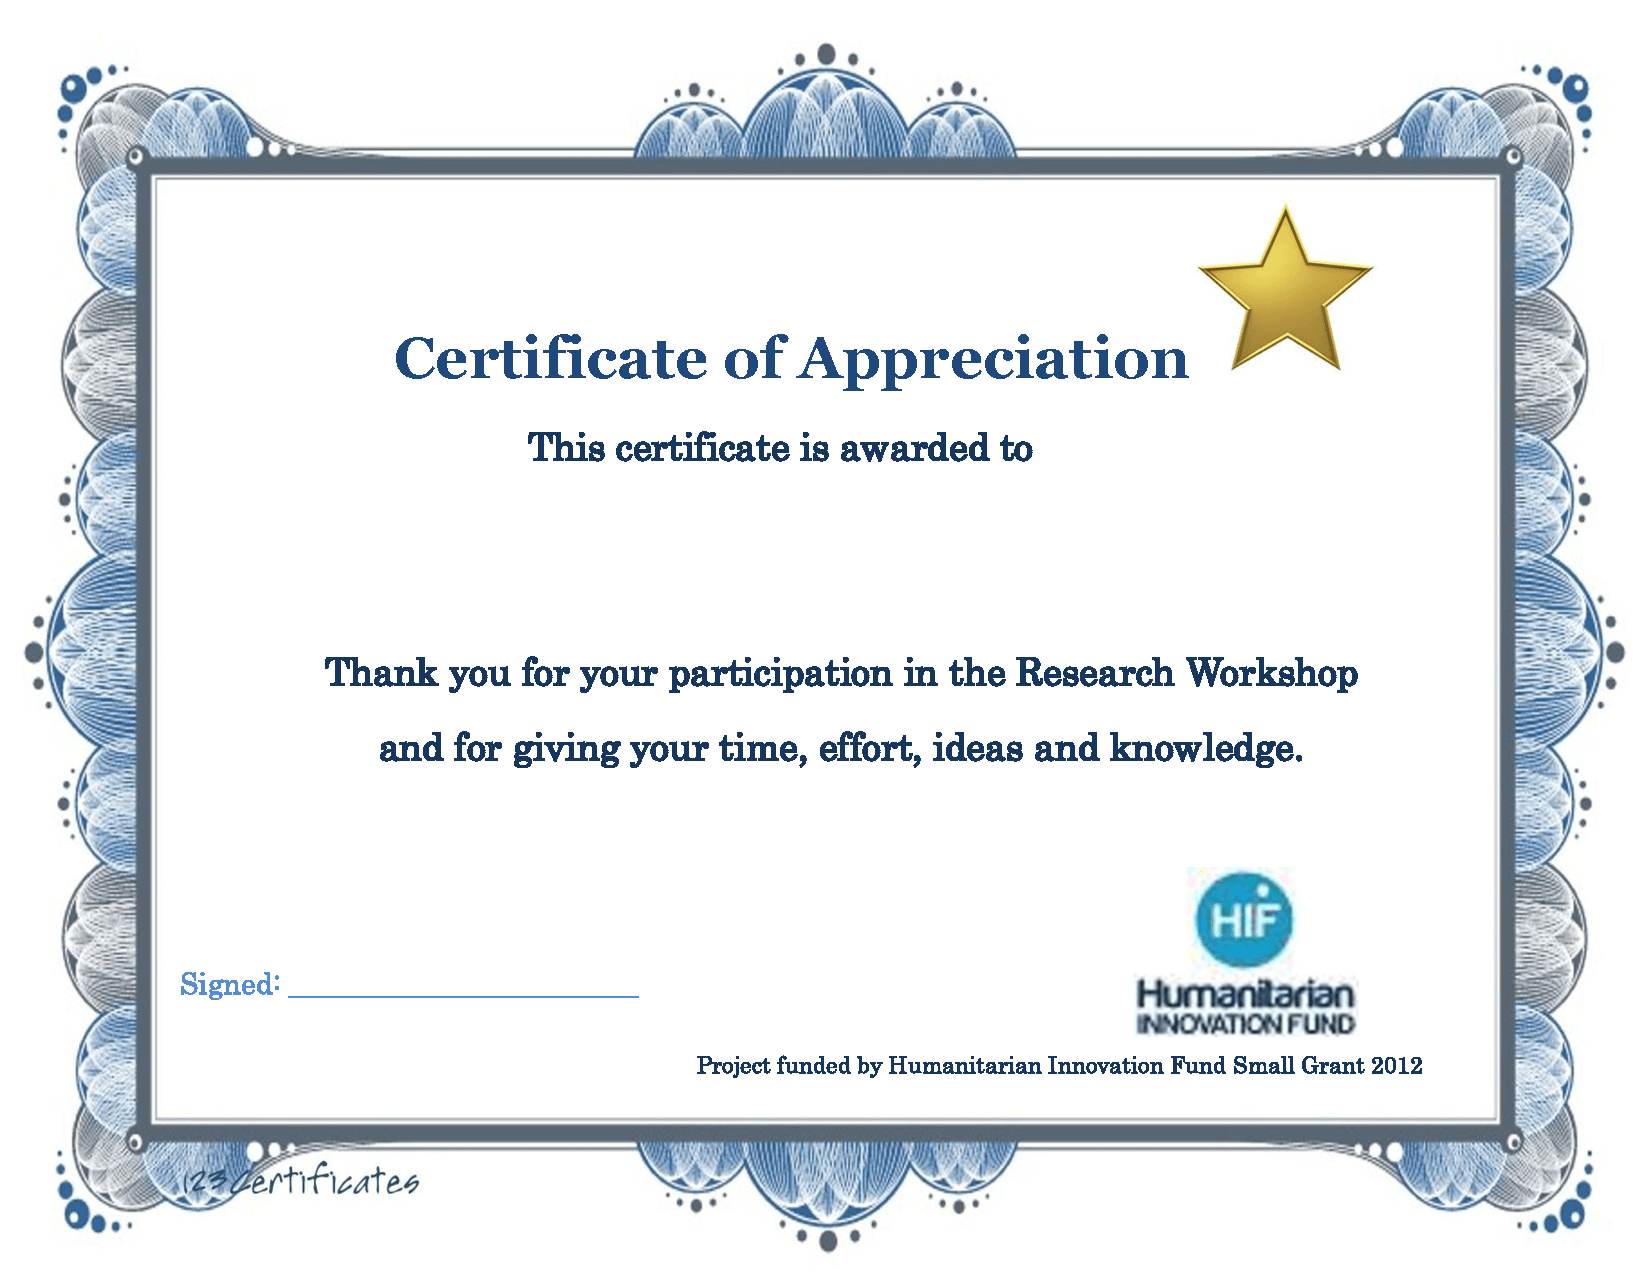 Appreciation Training Certificate Completion Thank You Word Letter Pertaining To Certificate Of Participation Word Template